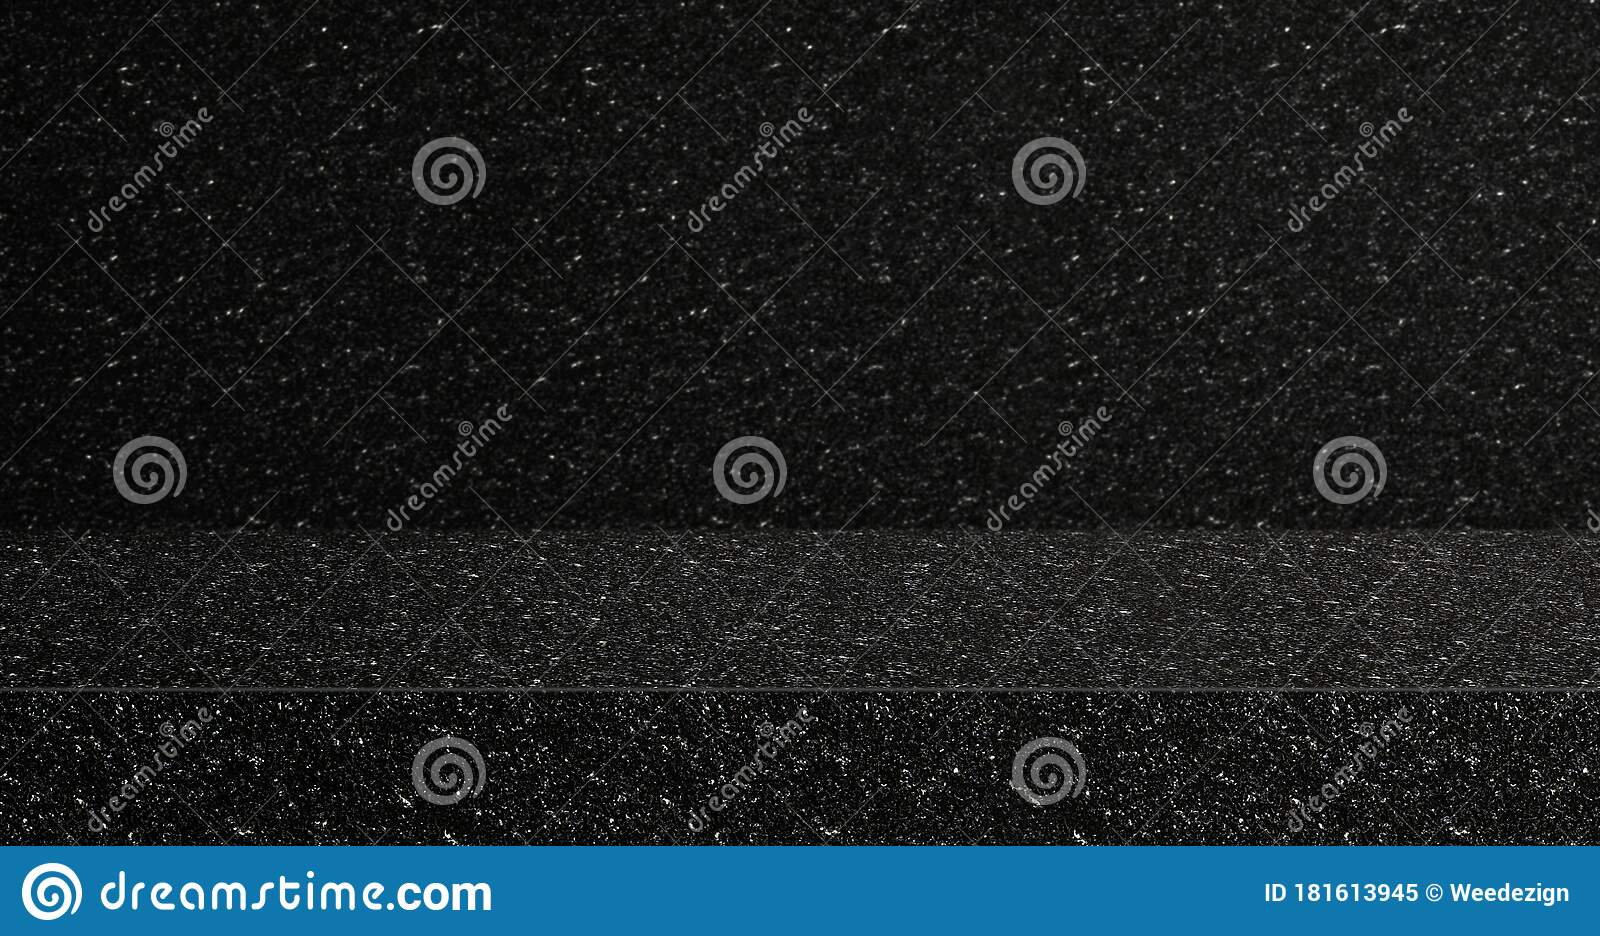 Black Glitter Texture Table Product Display Background 3d Perspective Studio Photography Stand Banner Mockup Space For Showcase Stock Image Image Of Festive Mockup 181613945